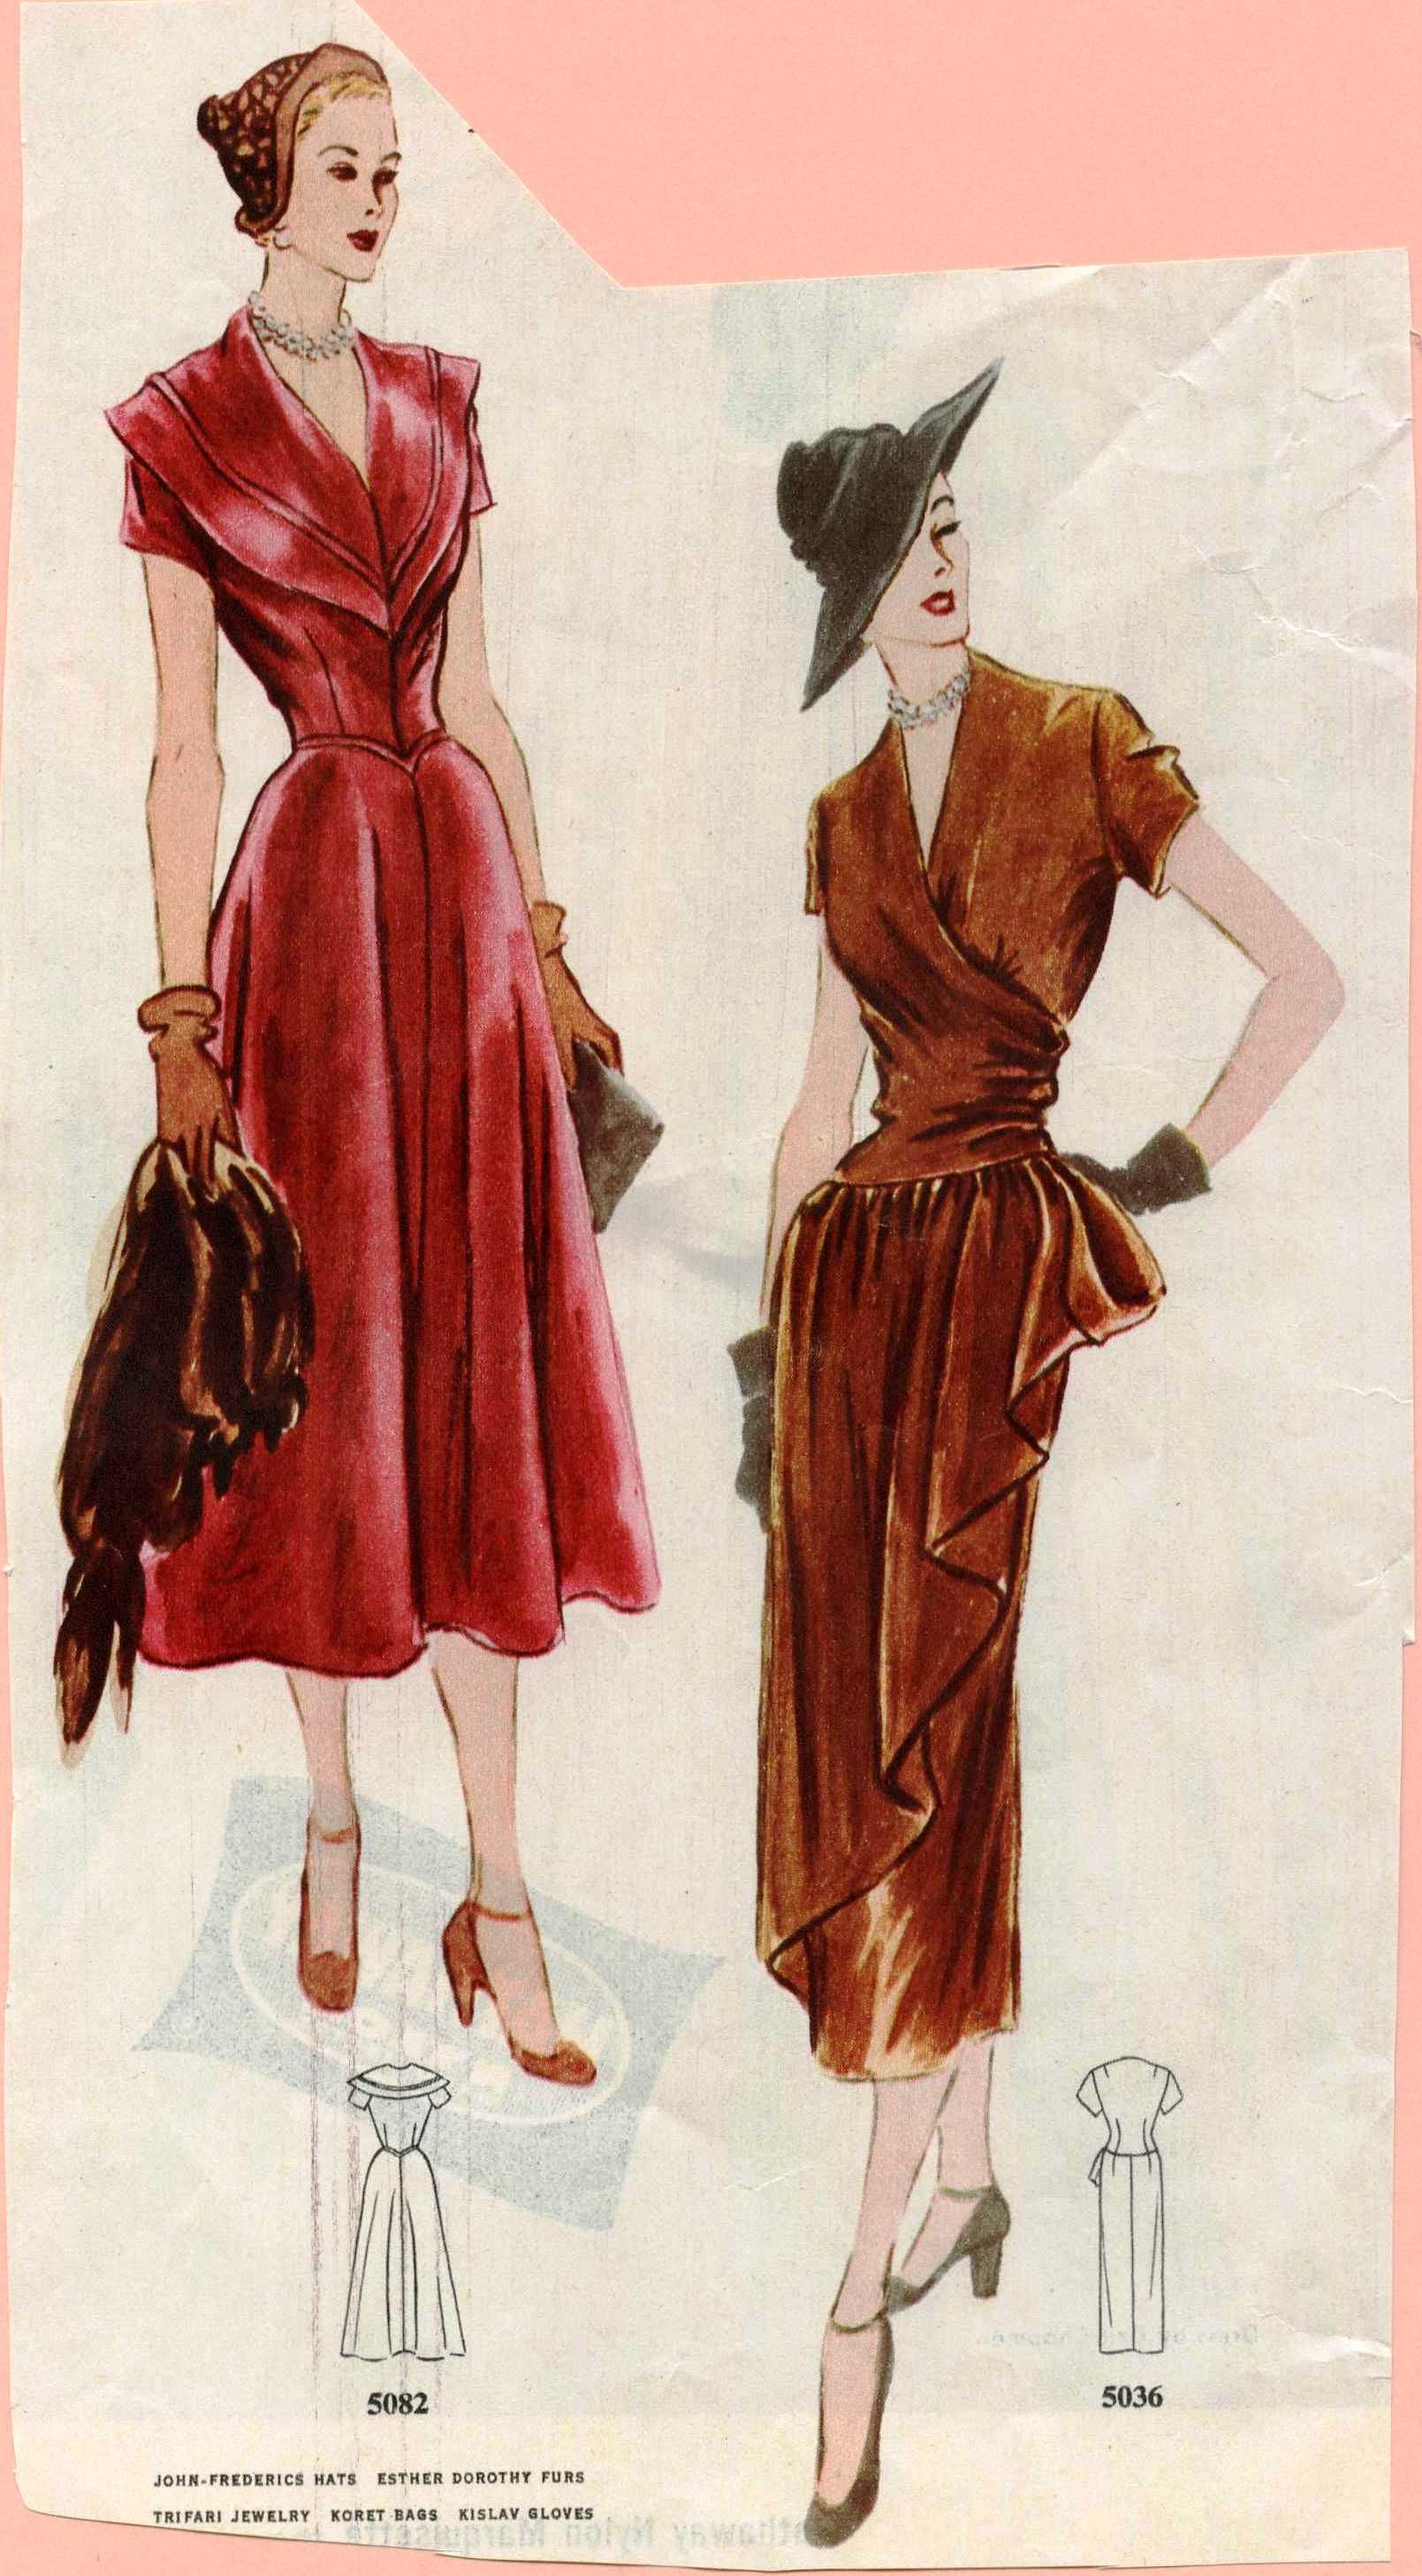 Vintage clothes fashion ads of the 1940s page 22 - Late 40s Red Brown Bronze Satin Dress Cocktail Wear Color Illustration Print Ad Vintage Fashion Style